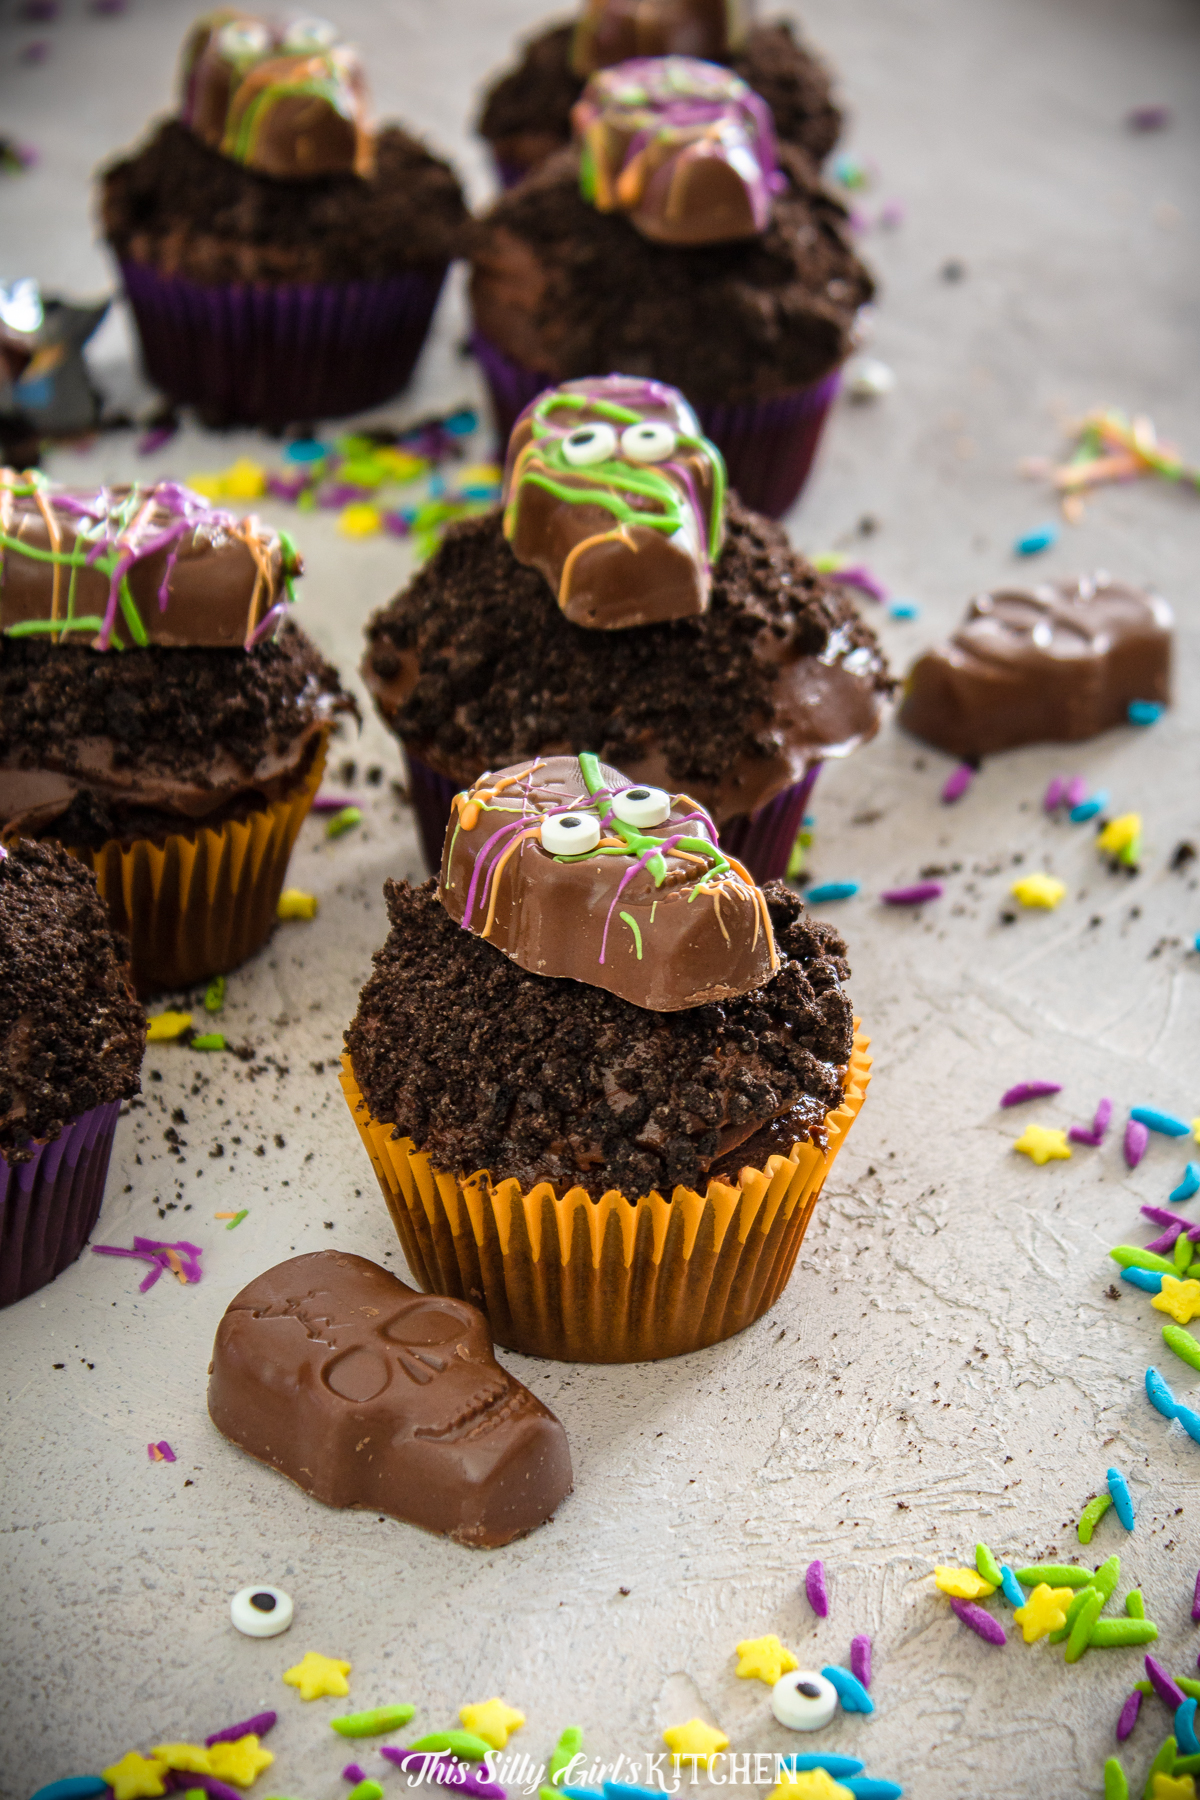 Monster Halloween Cupcakes are a festive treat to serve during the fall season. Perfect for parties or as an after trick-or-treating snack!